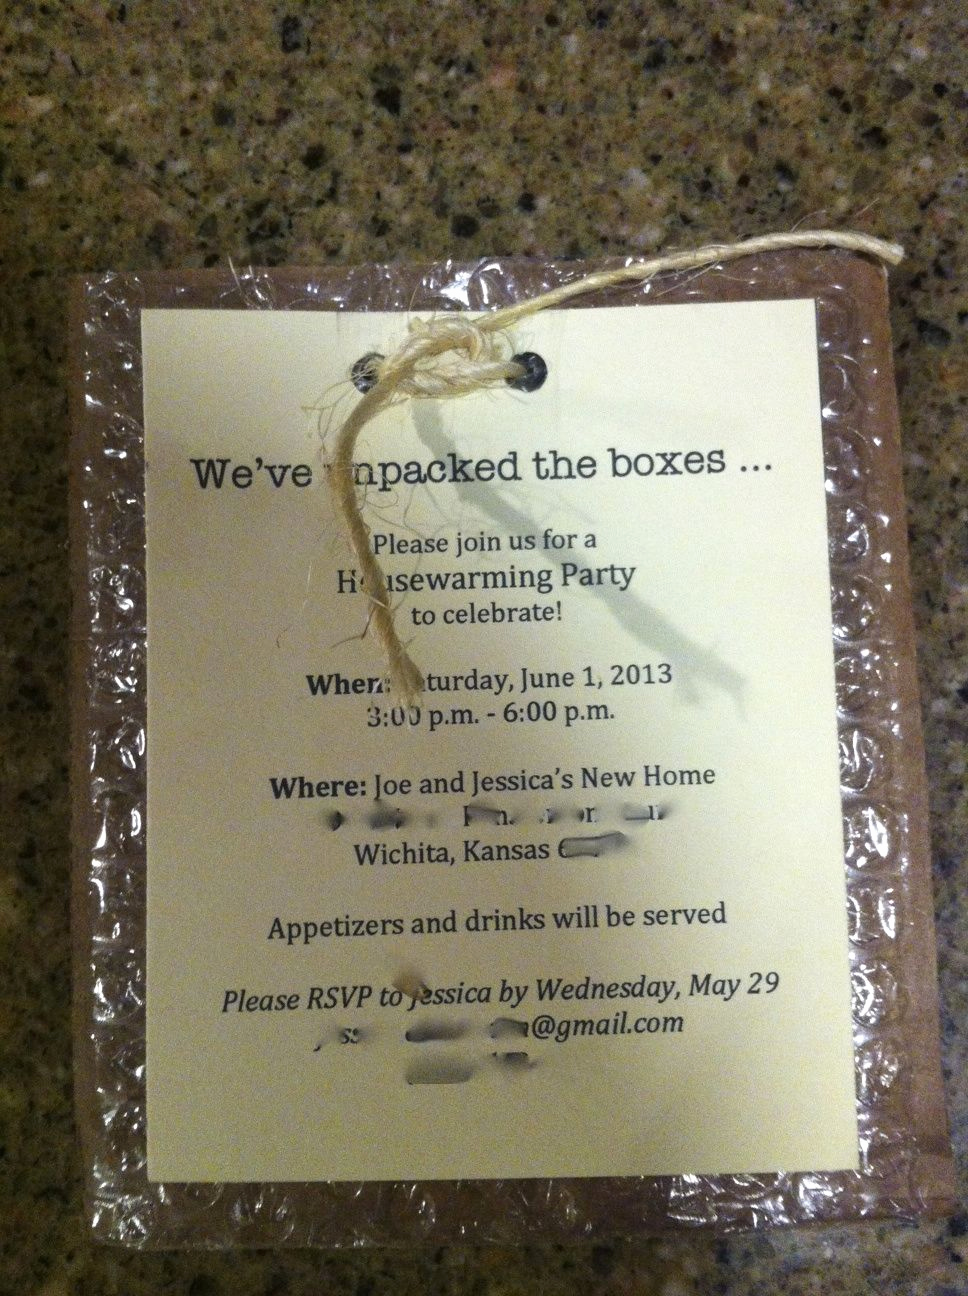 Housewarming Party Invitation Ideas New Our Housewarming Party Invitation with Personal Info